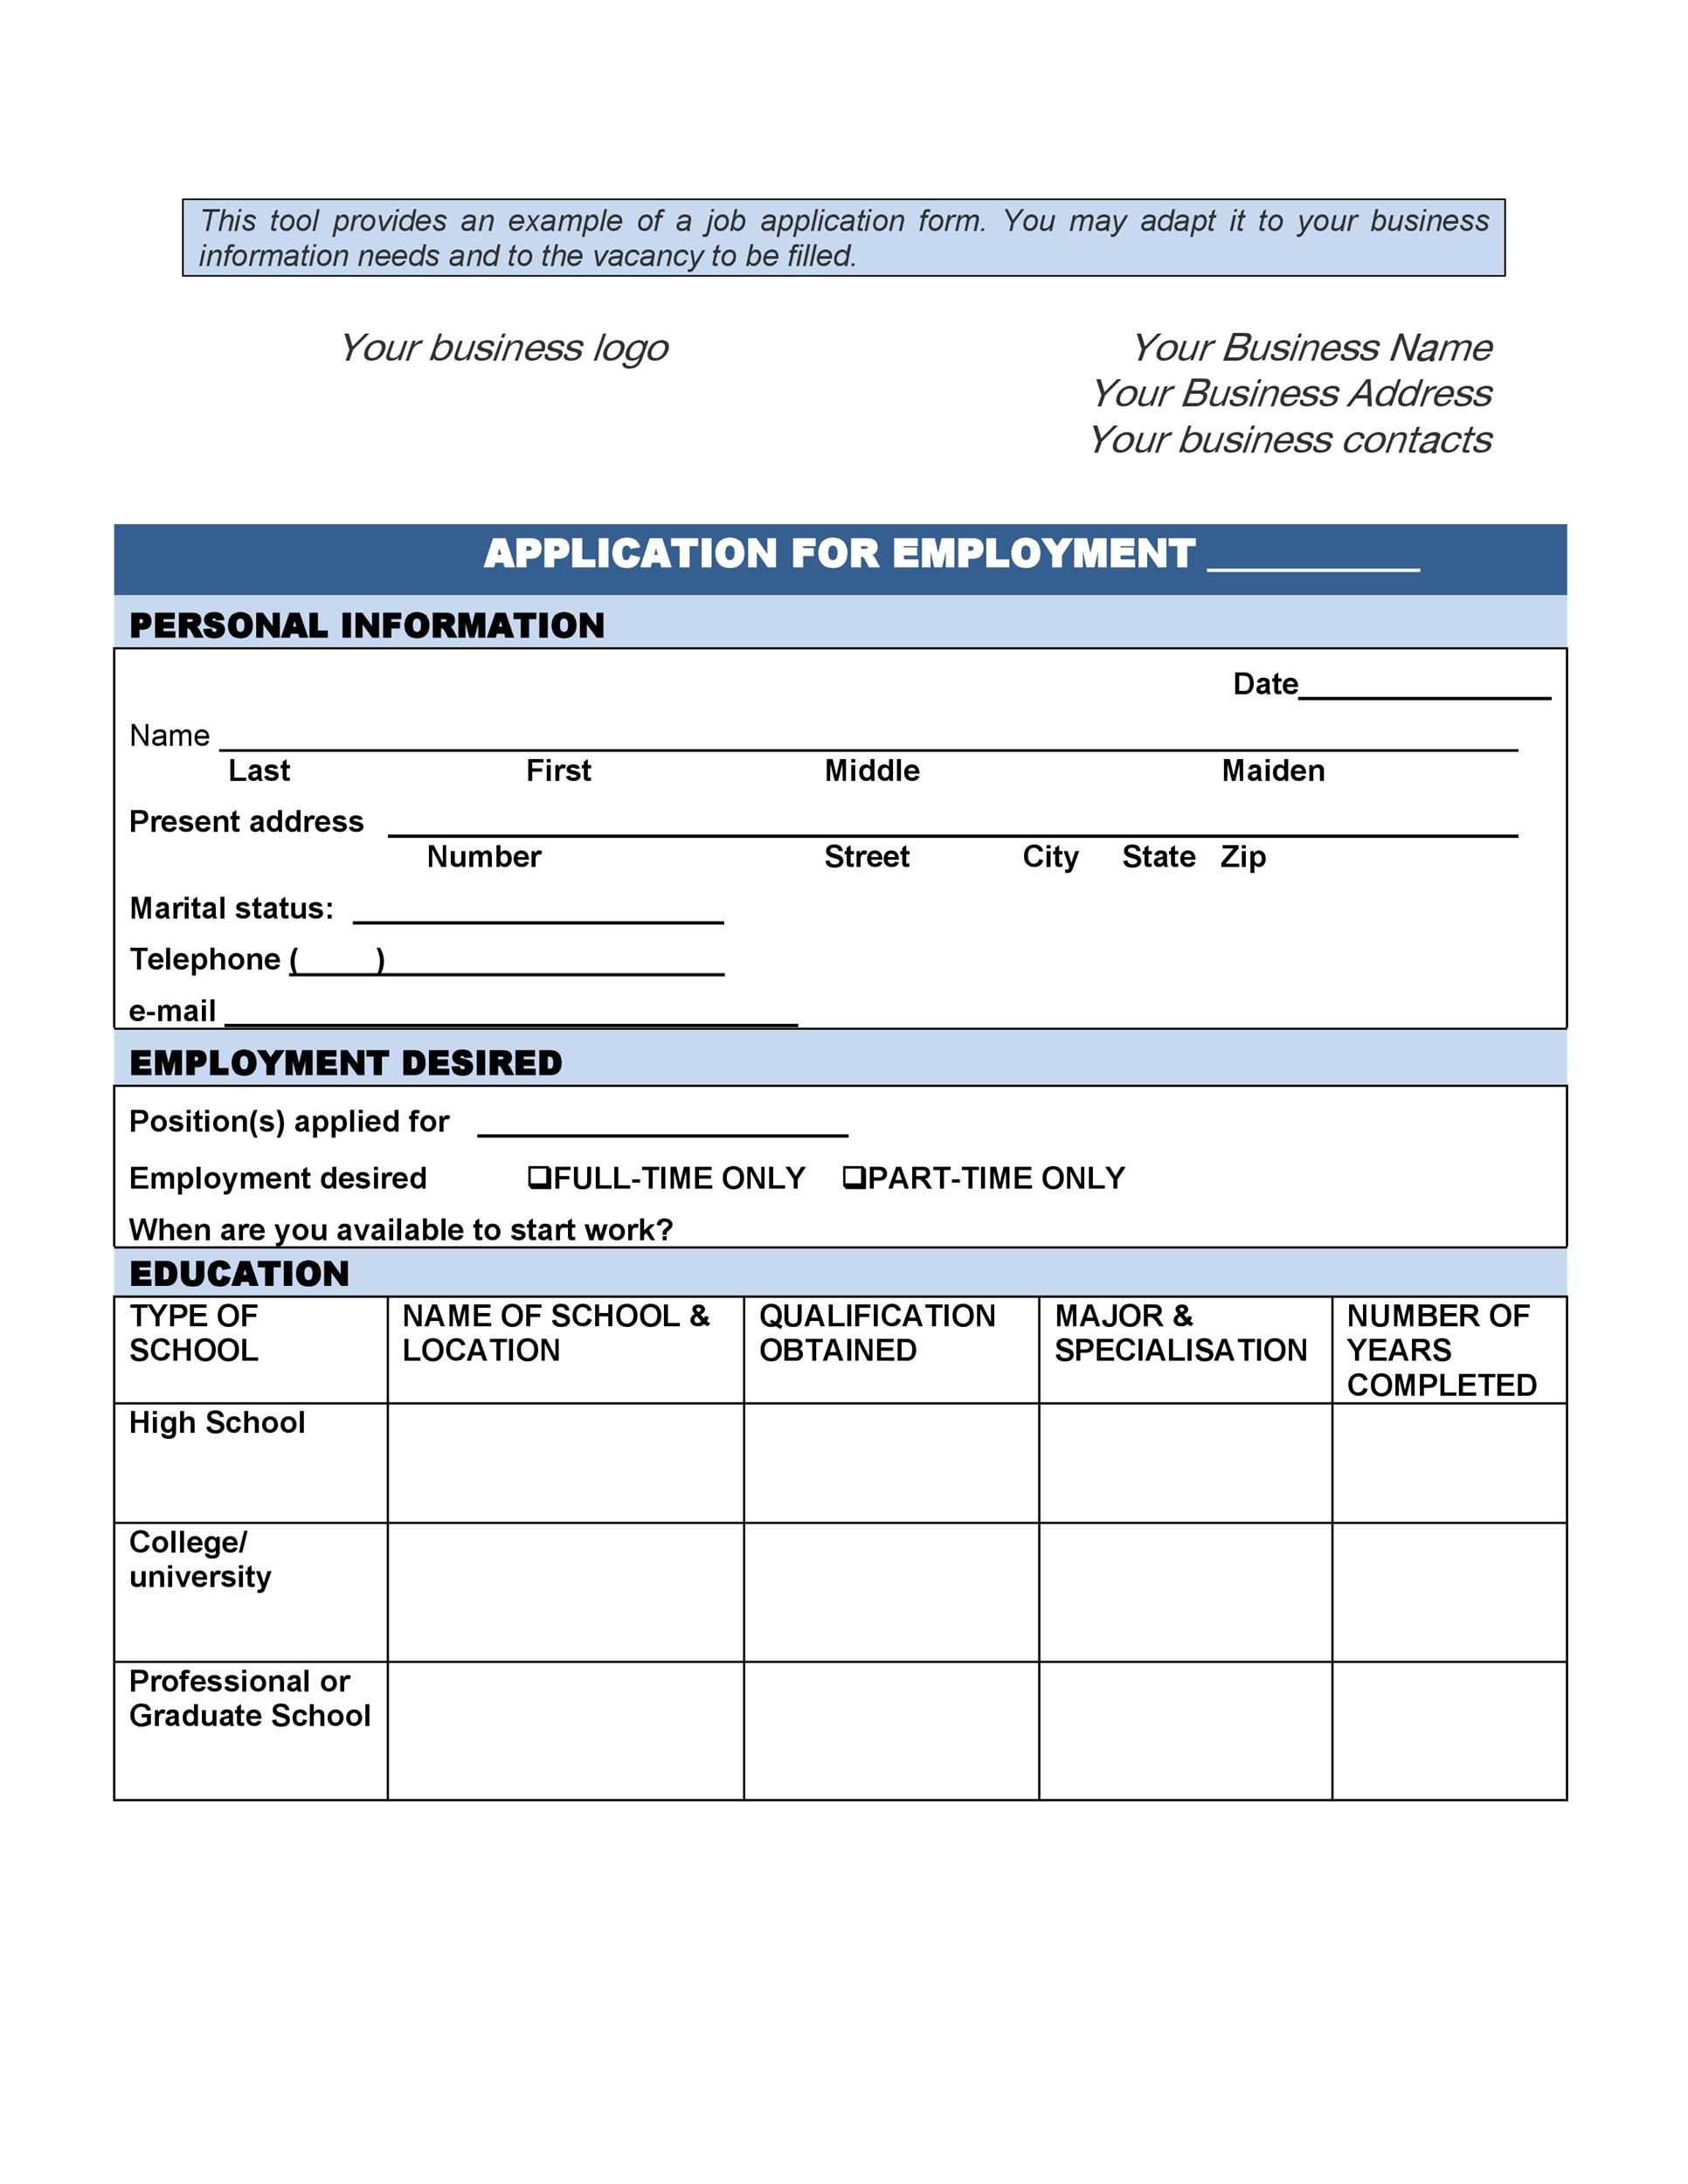 009 Unforgettable Job Application Template Microsoft Word High Def  Fillable Form CollegeFull